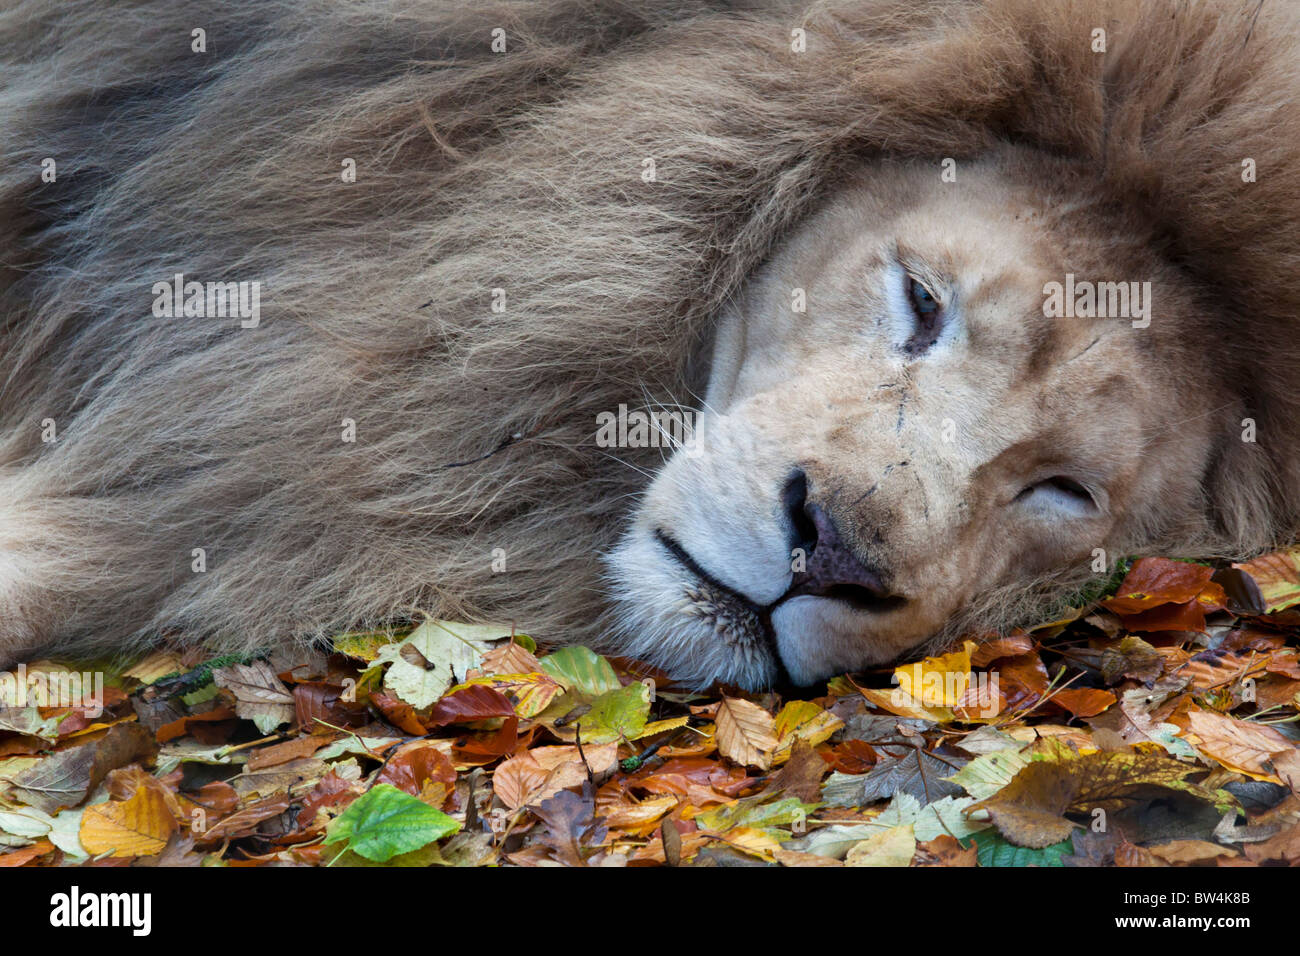 Male white lion - Stock Image